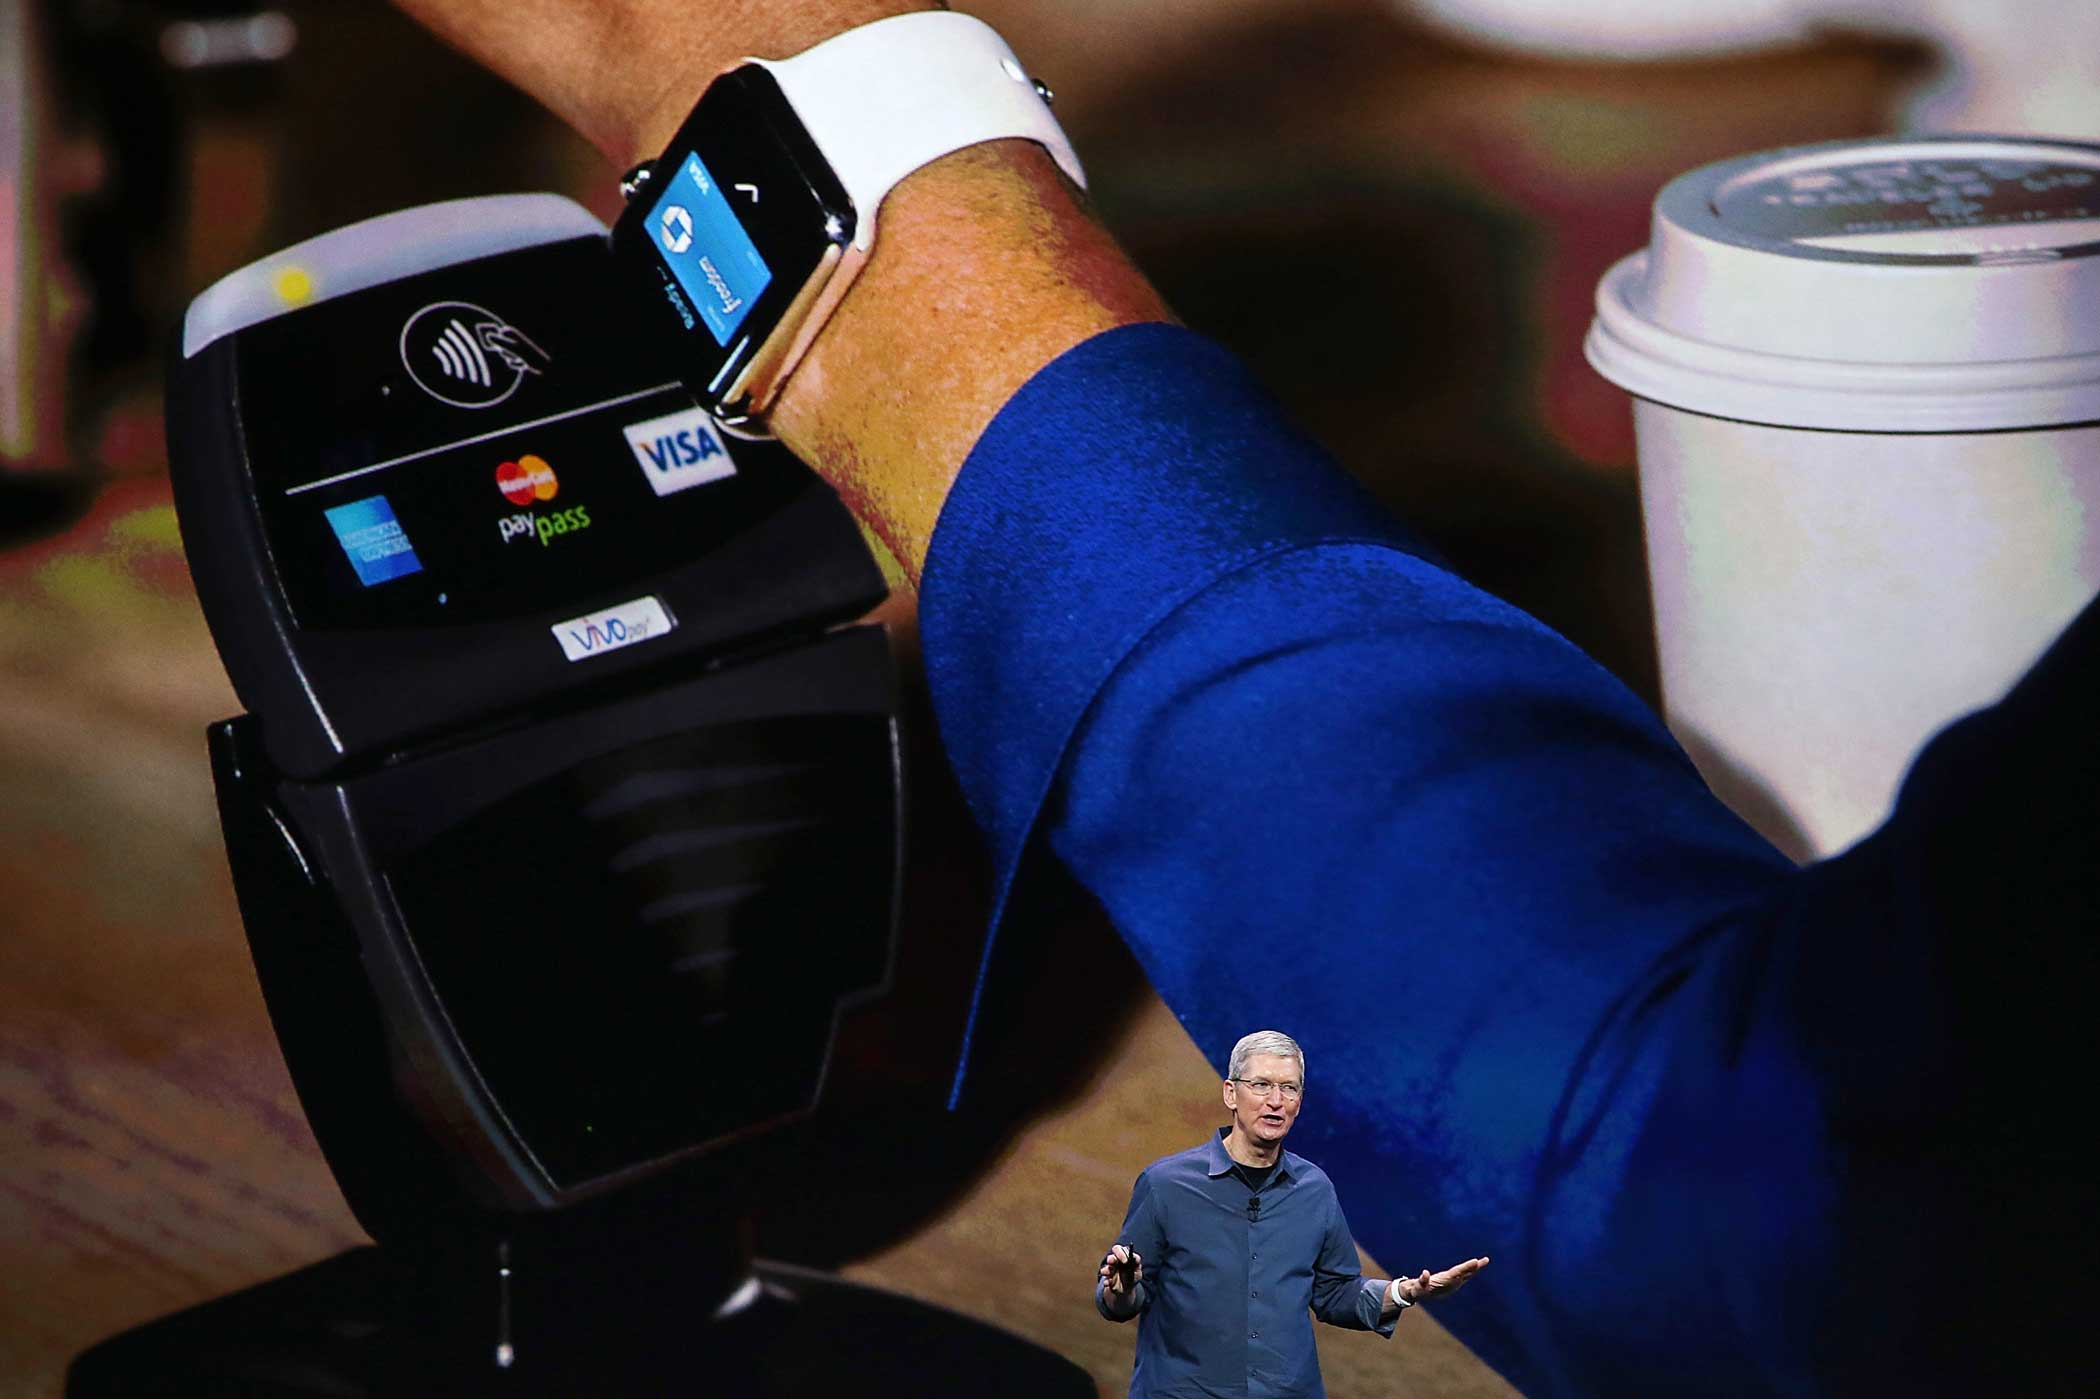 It also has Apple Pay, the company's digital payments platform. Swipe the Watch in front of a compatible kiosk and it will make an automatic online payment.